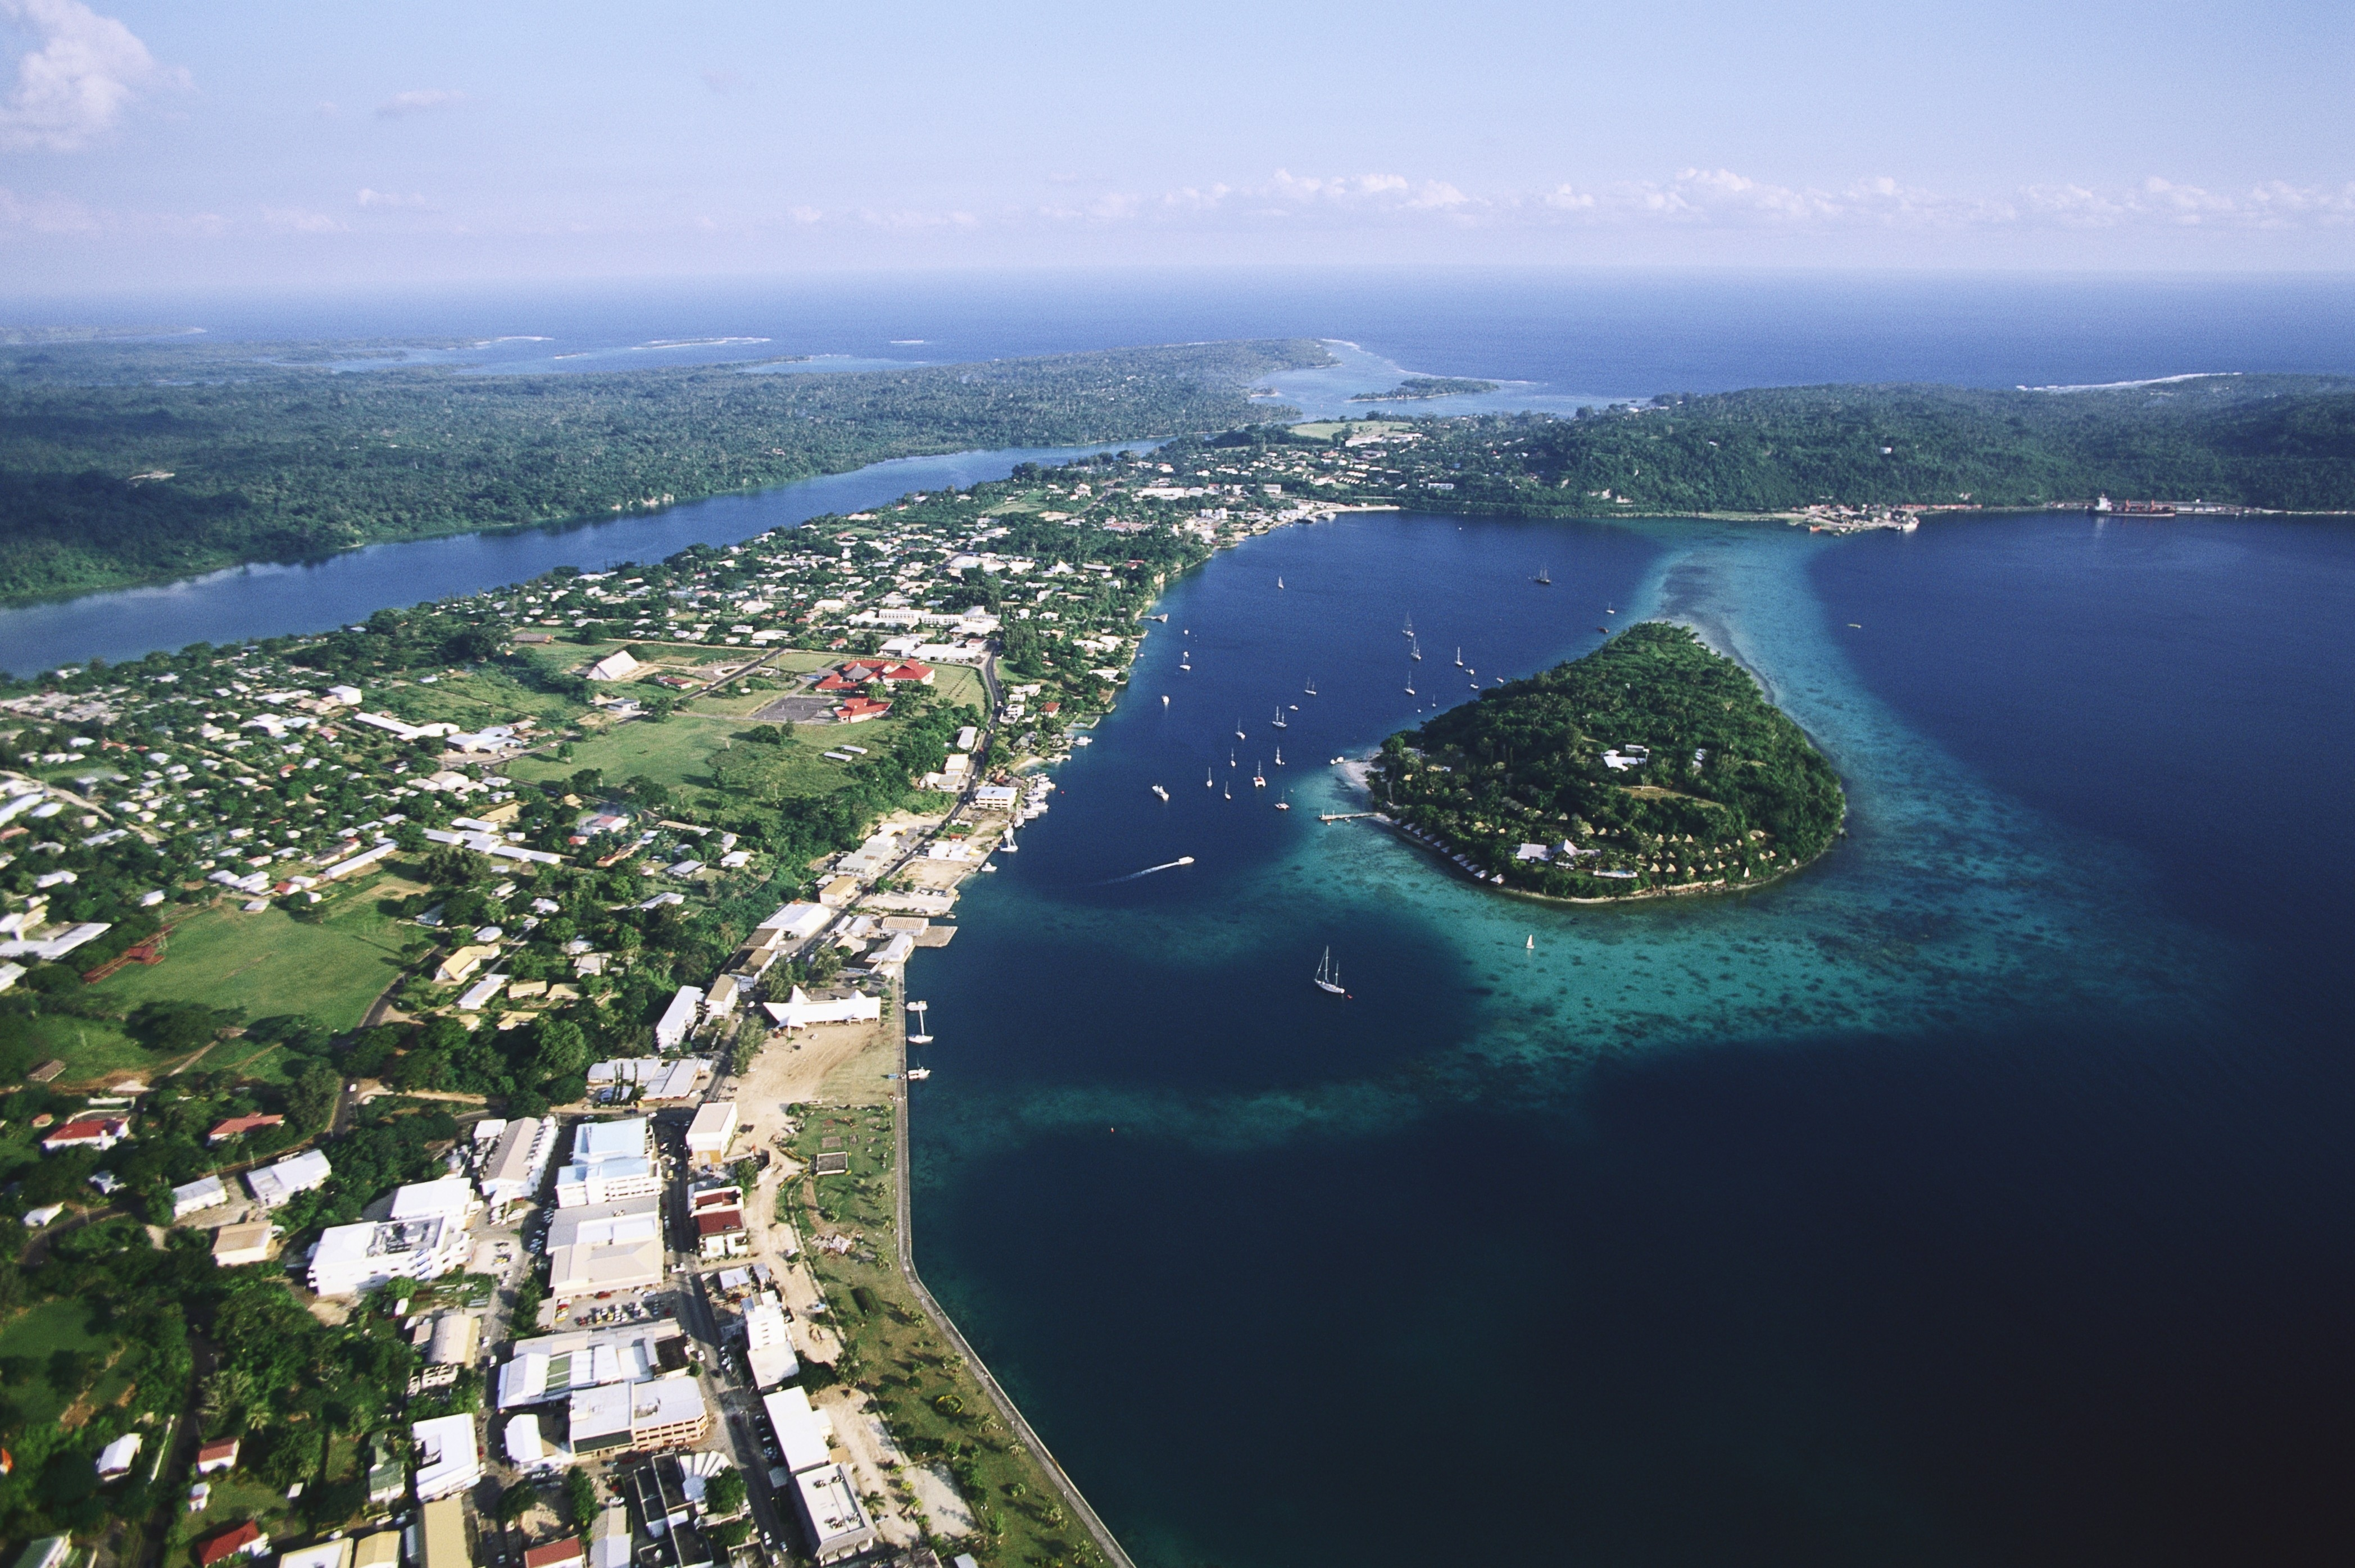 An aerial photograph of Port Vila, the capital of Vanuatu, also shows Iririki Island in Port Vila Bay. Photo © Anders Ryman/Corbis